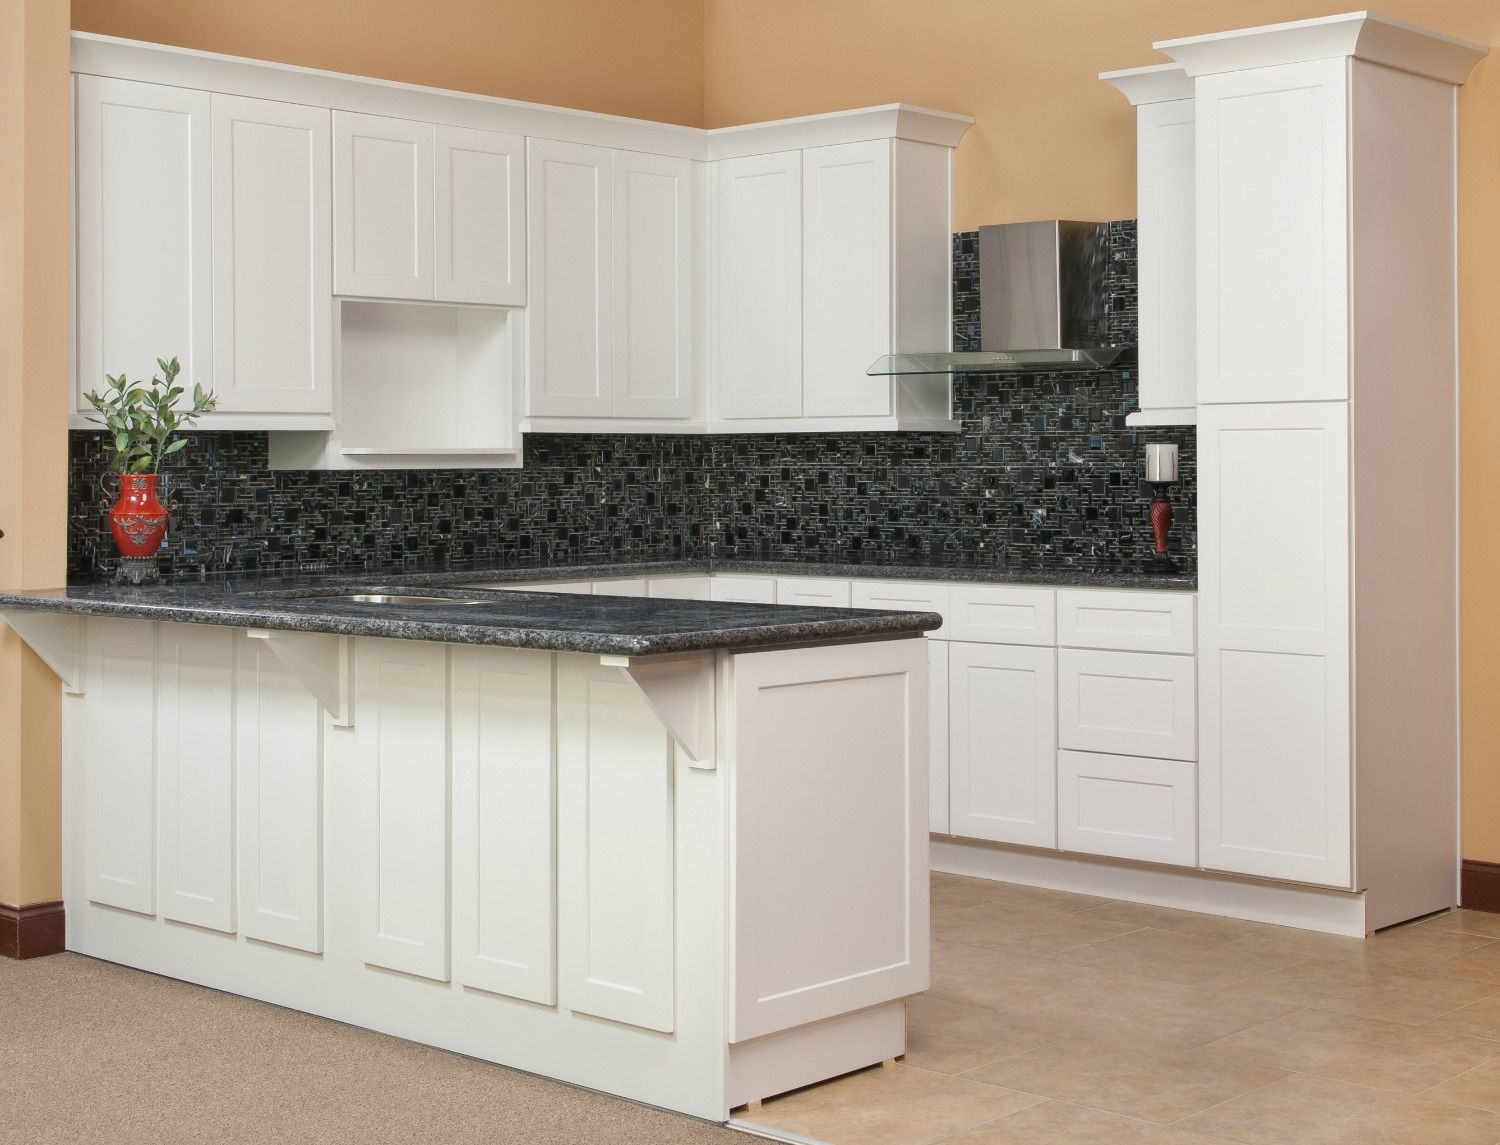 rta kitchen of the day cheap white kitchen cabinets View our kitchen cabinets online today to find great deals